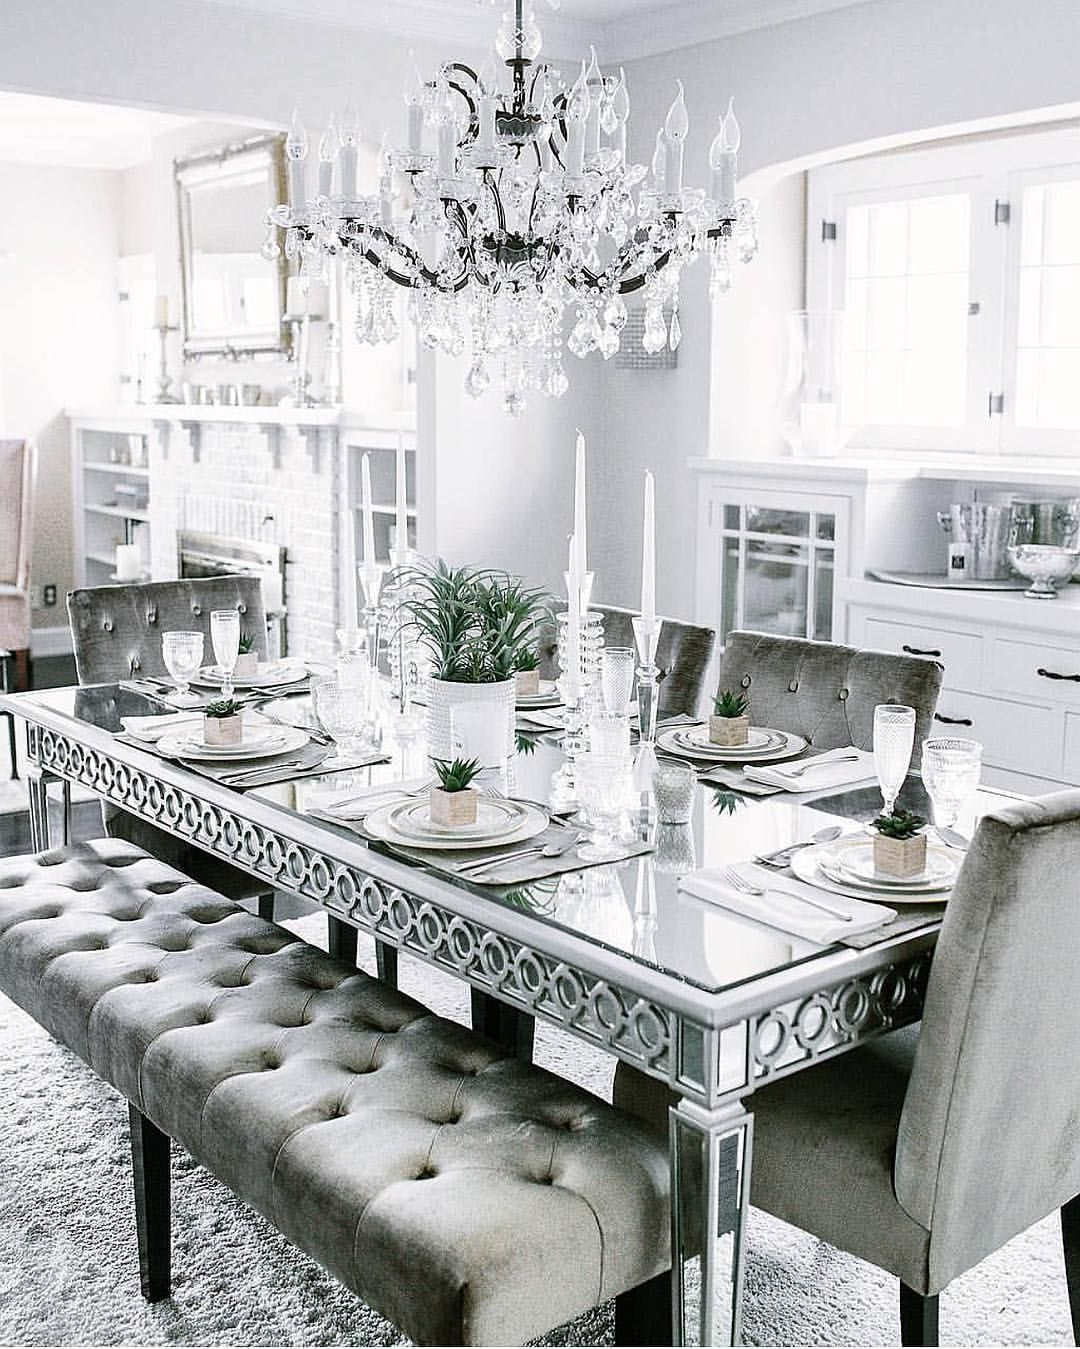 Inspire Me Home Decor On Instagram Such A Glam Set Up Thank